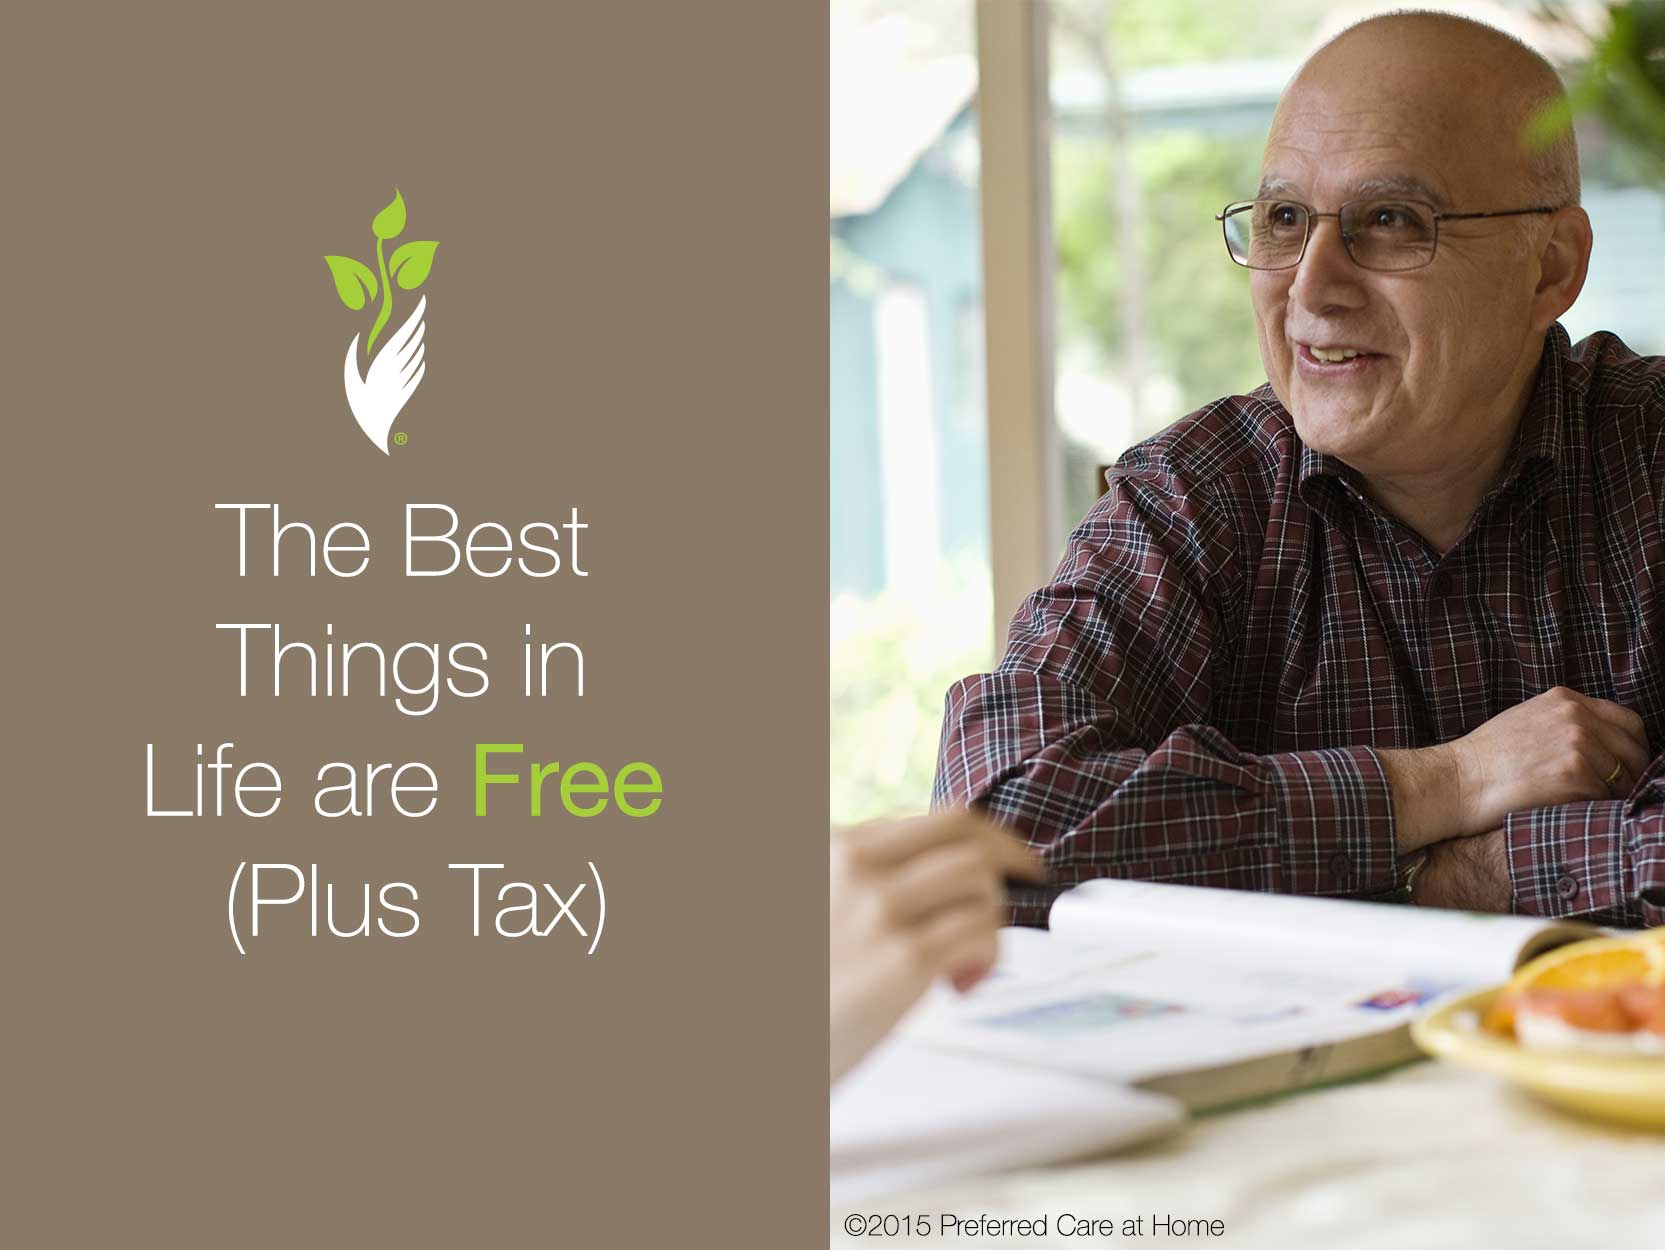 The Best Things in Life are Free (Plus Tax)